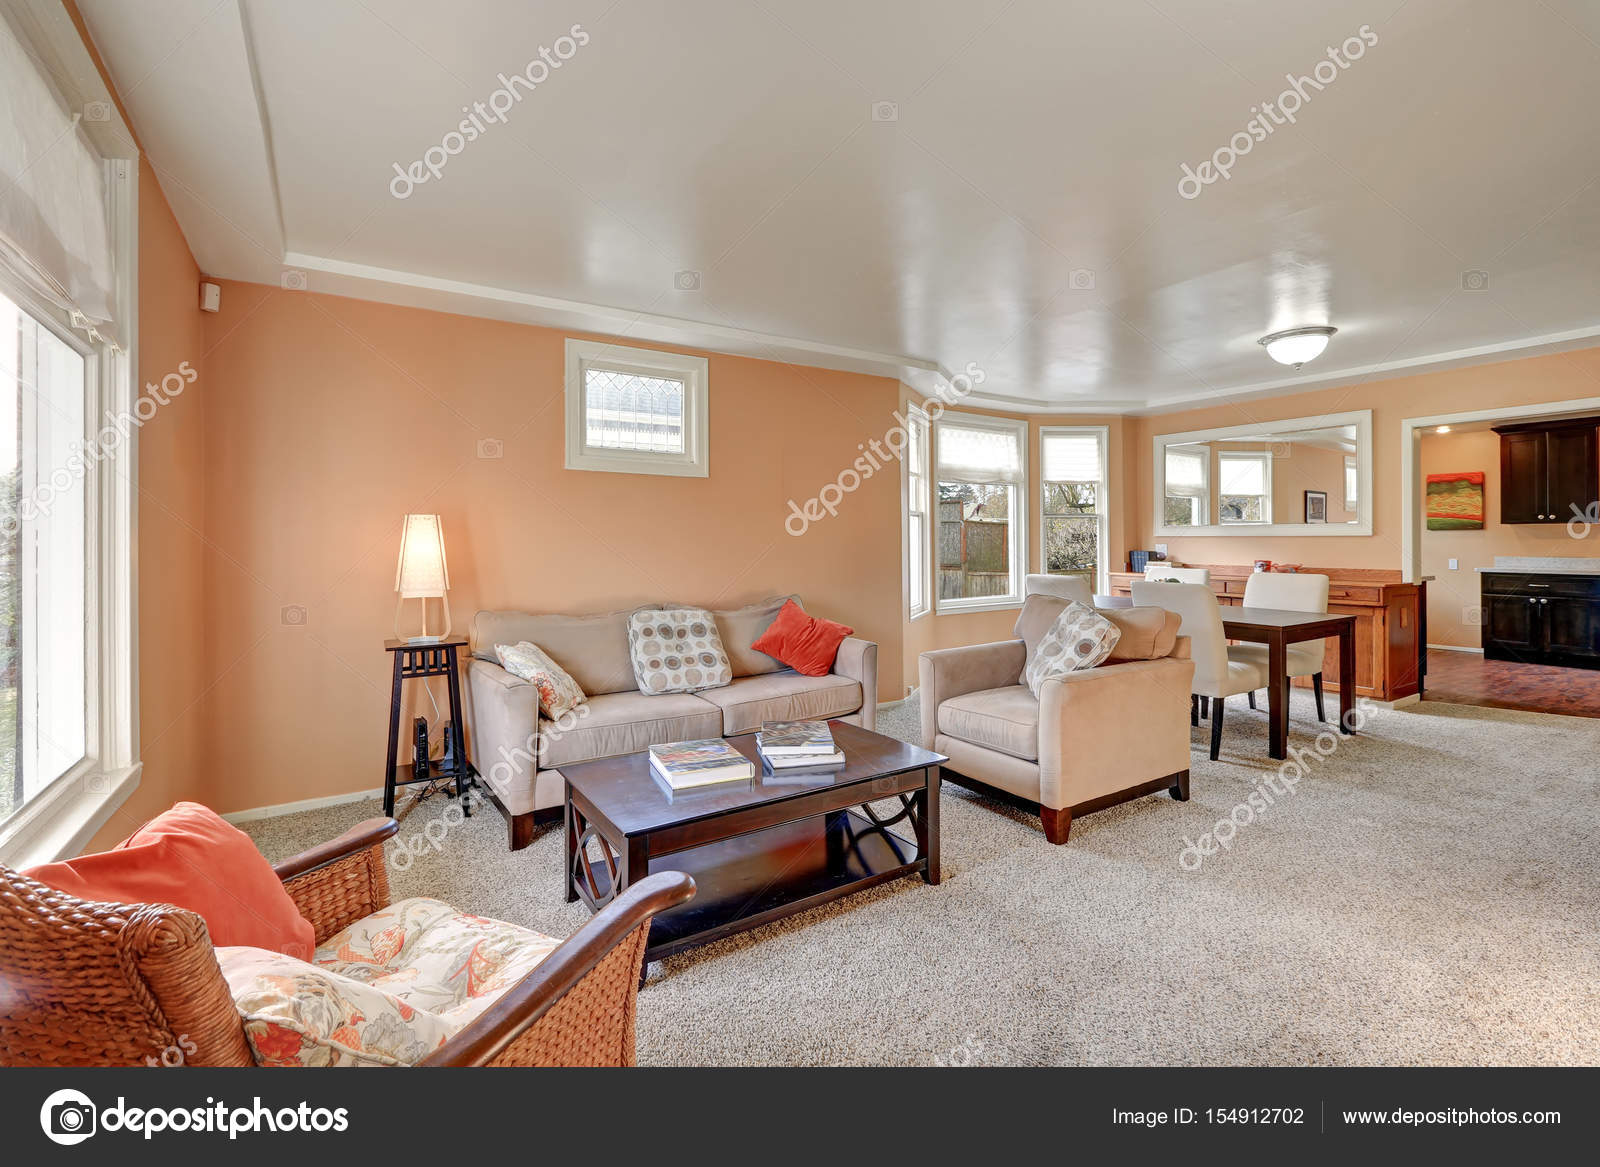 design designs ideas peach for clever inspiration interior crafty curtains walls